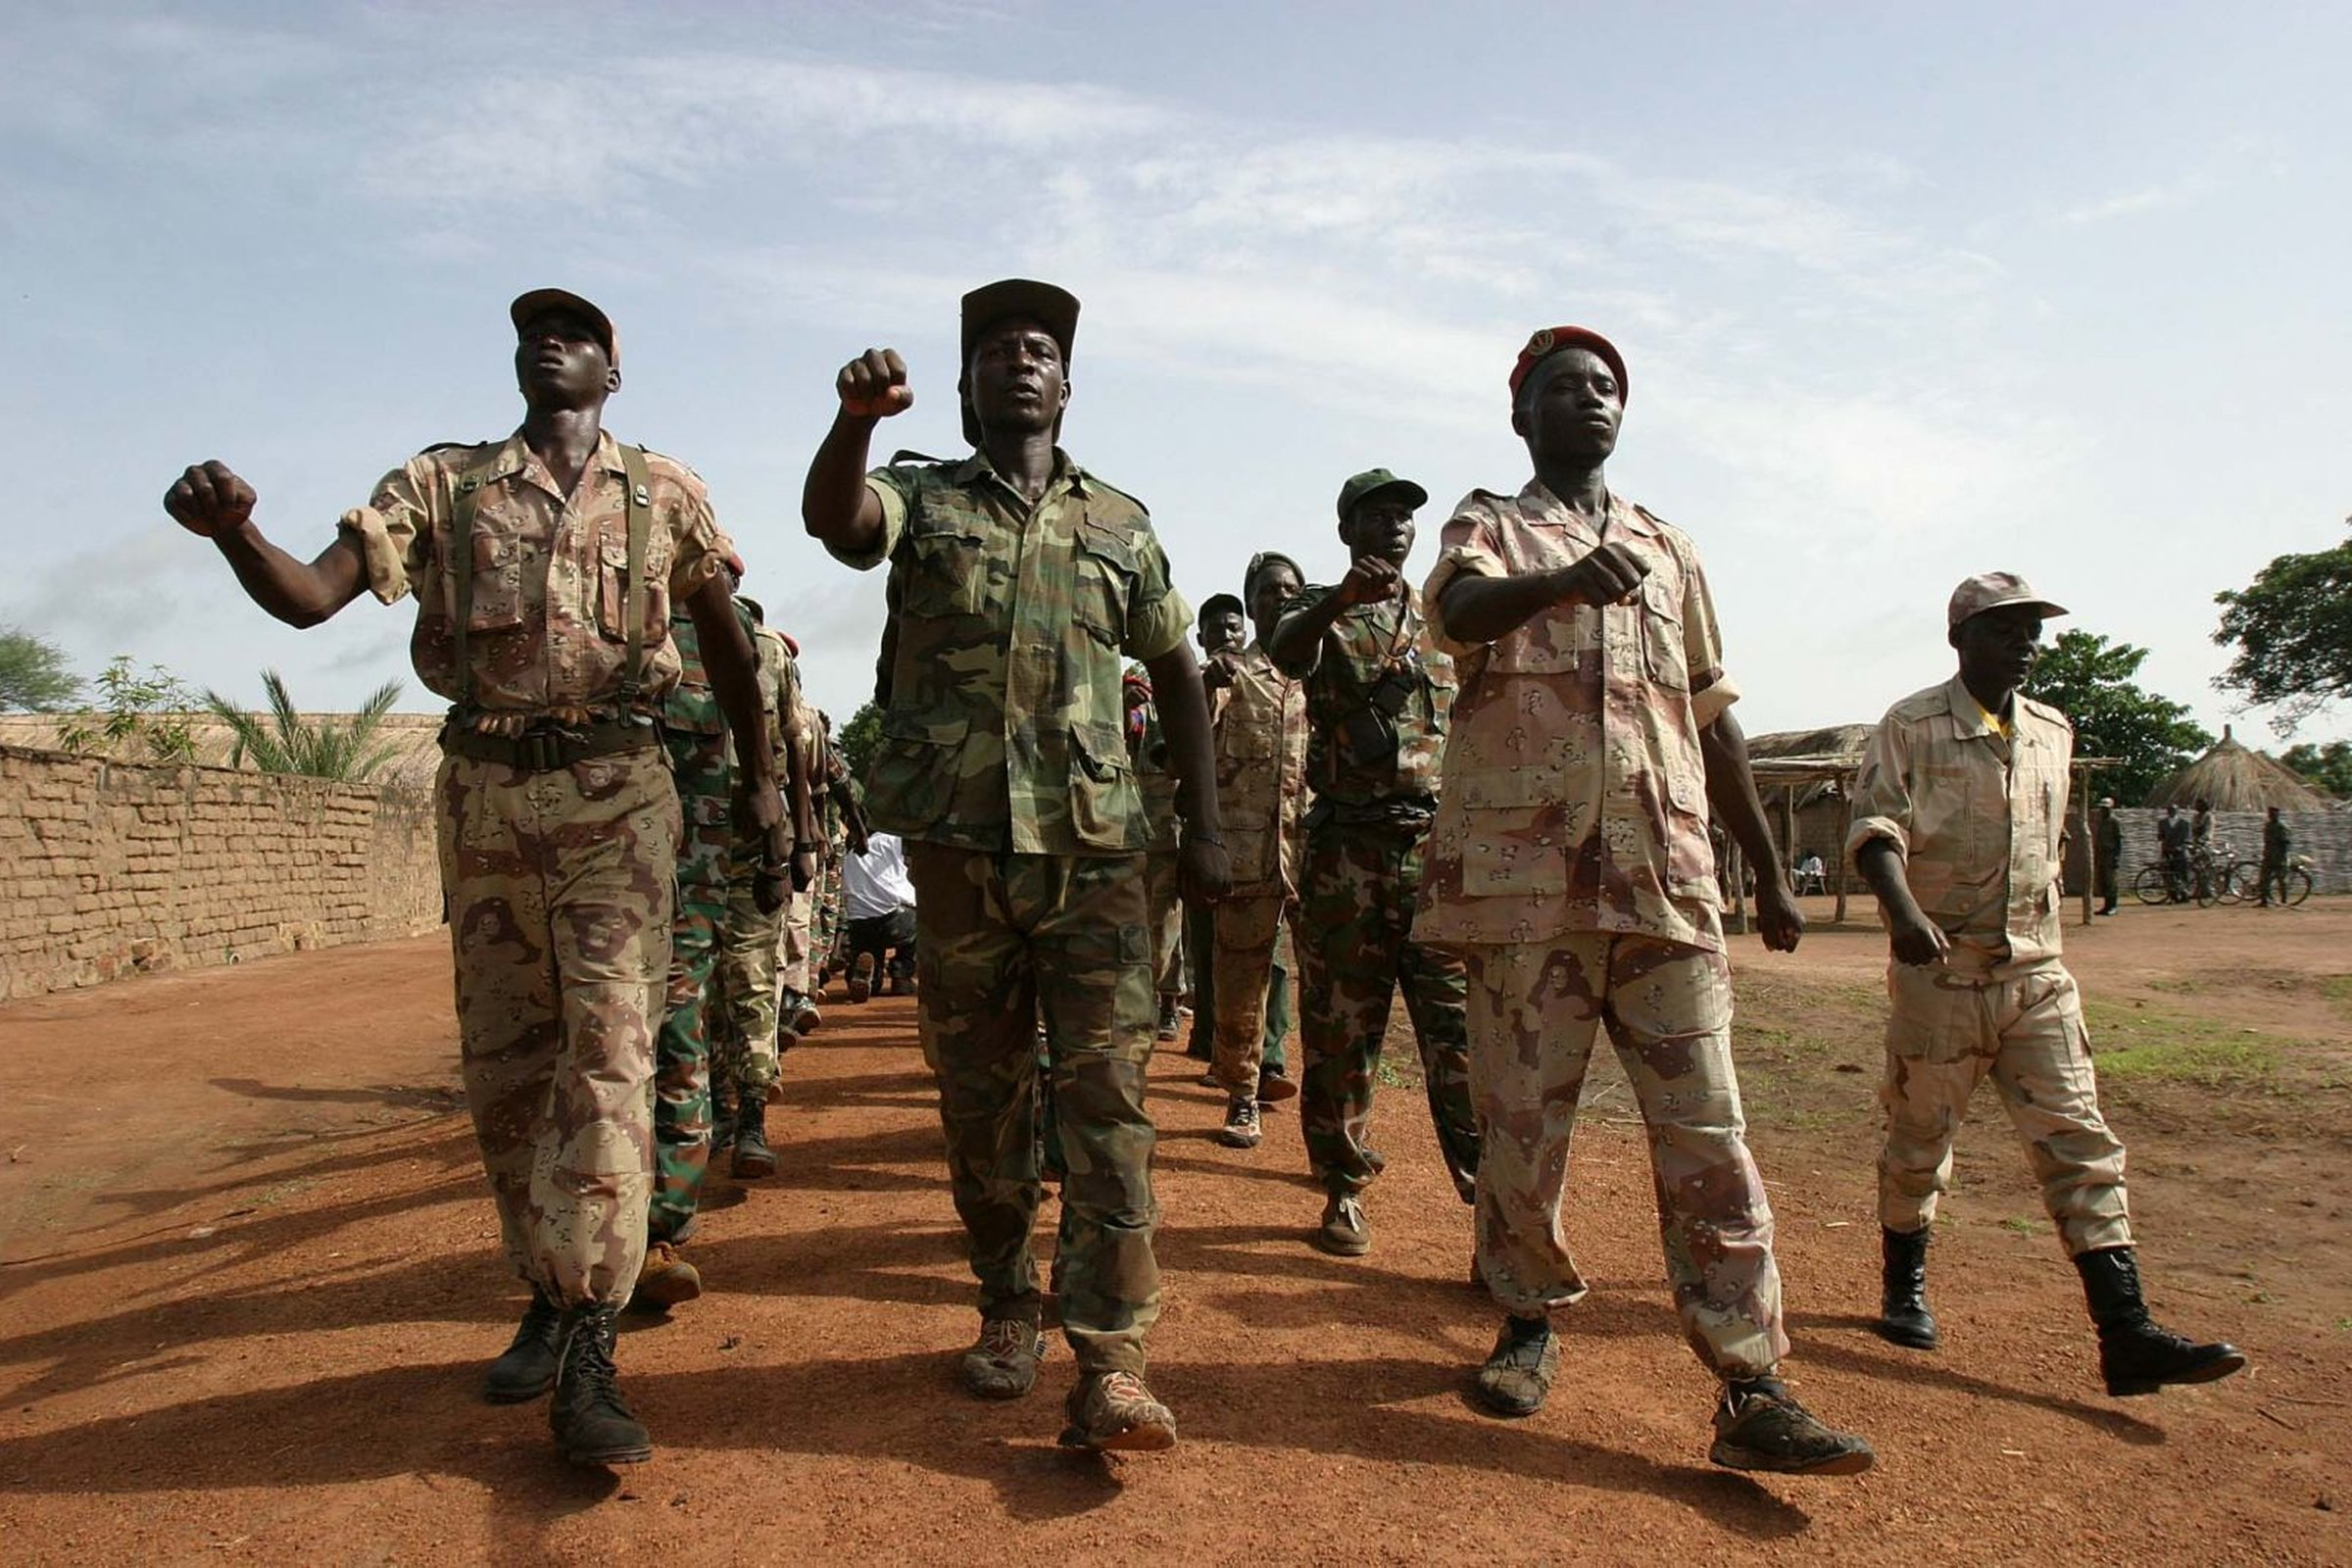 african insurgency groups causes and responses 'arc of instability' across africa, if left  if left unchecked, could turn continent into launch  to weaken terrorist groups in those cases, african.